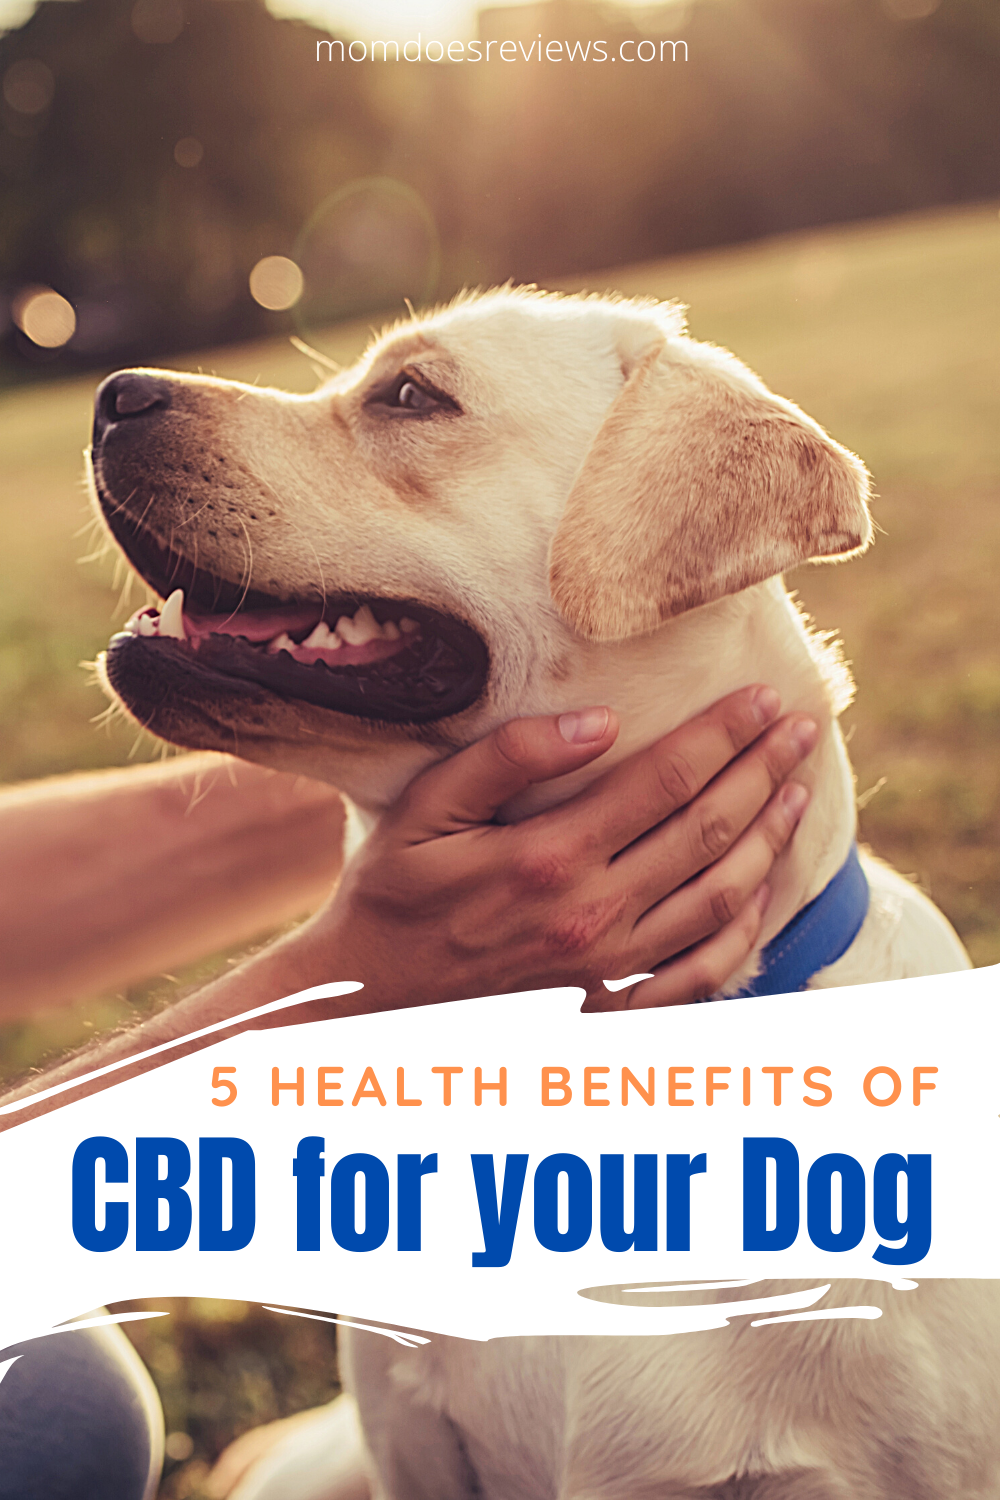 5 Health Benefits of CBD for Your Dog